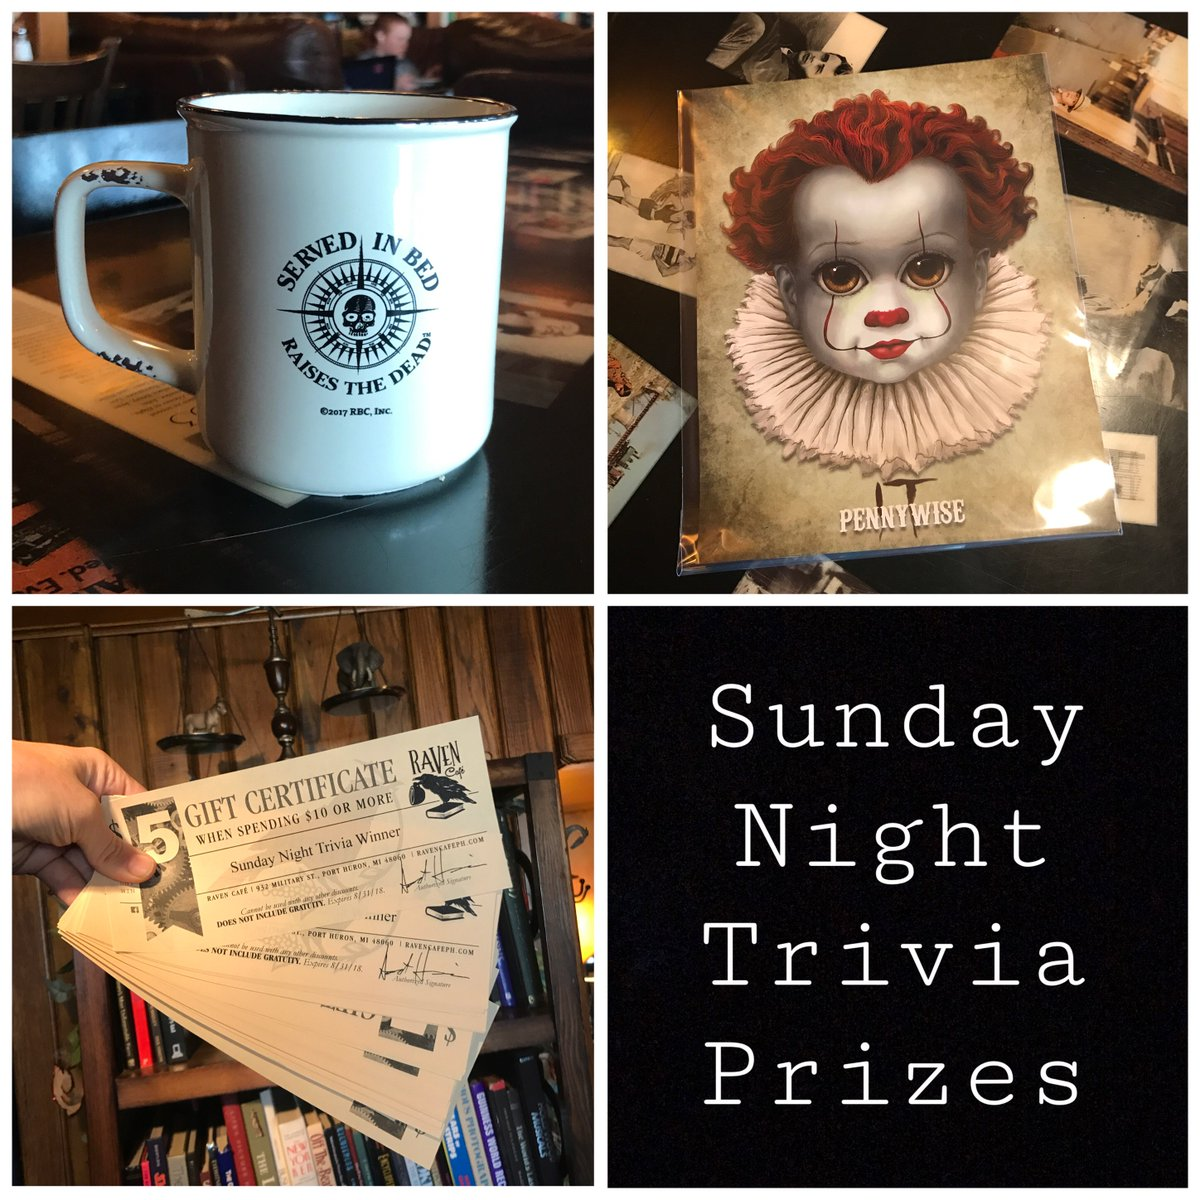 Sunday Night Triva Prizes! Grab a team (any size) and come play trivia this Sunday at 6:00 p.m. It's FREE to play and there are awesome prizes to win!!!! @bittybaddies @RavensBrew @mytrivialive<br>http://pic.twitter.com/QoVRT0N3bg